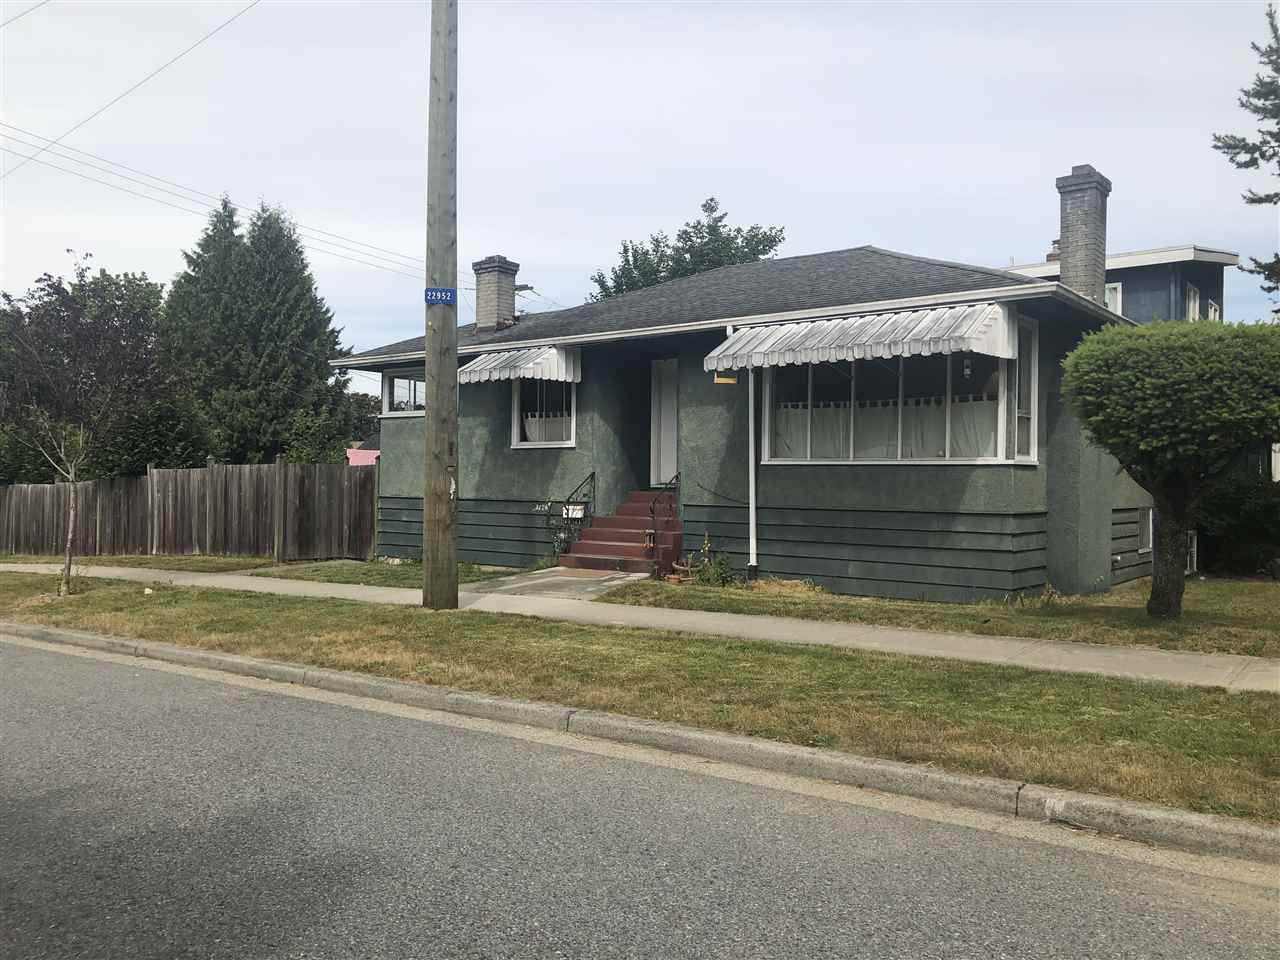 Main Photo: 3176 TRIMBLE Street in Vancouver: Point Grey House for sale (Vancouver West)  : MLS®# R2379172